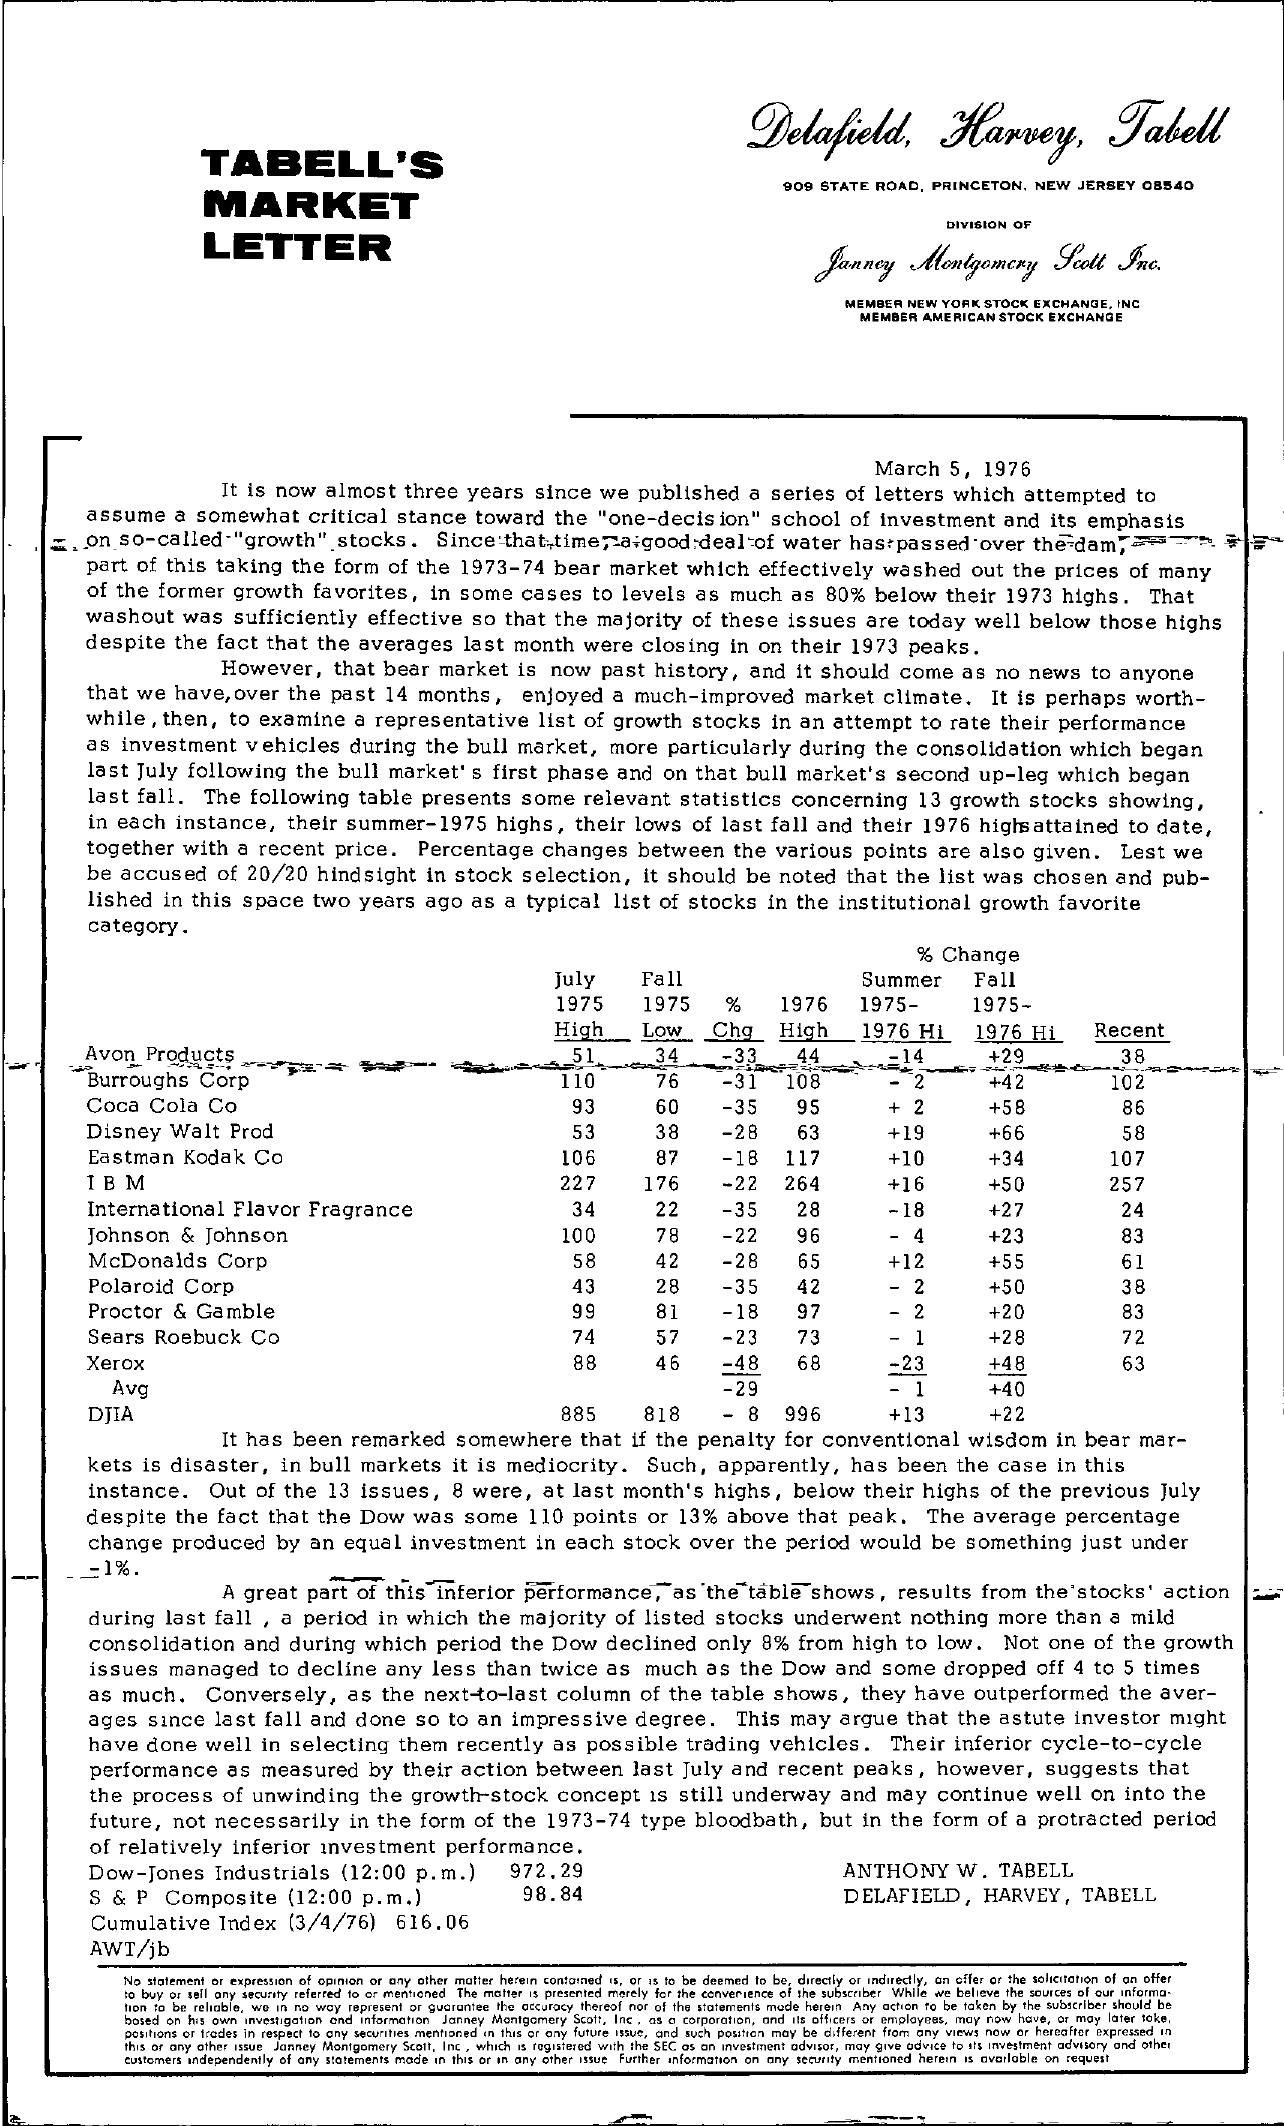 Tabell's Market Letter - March 05, 1976